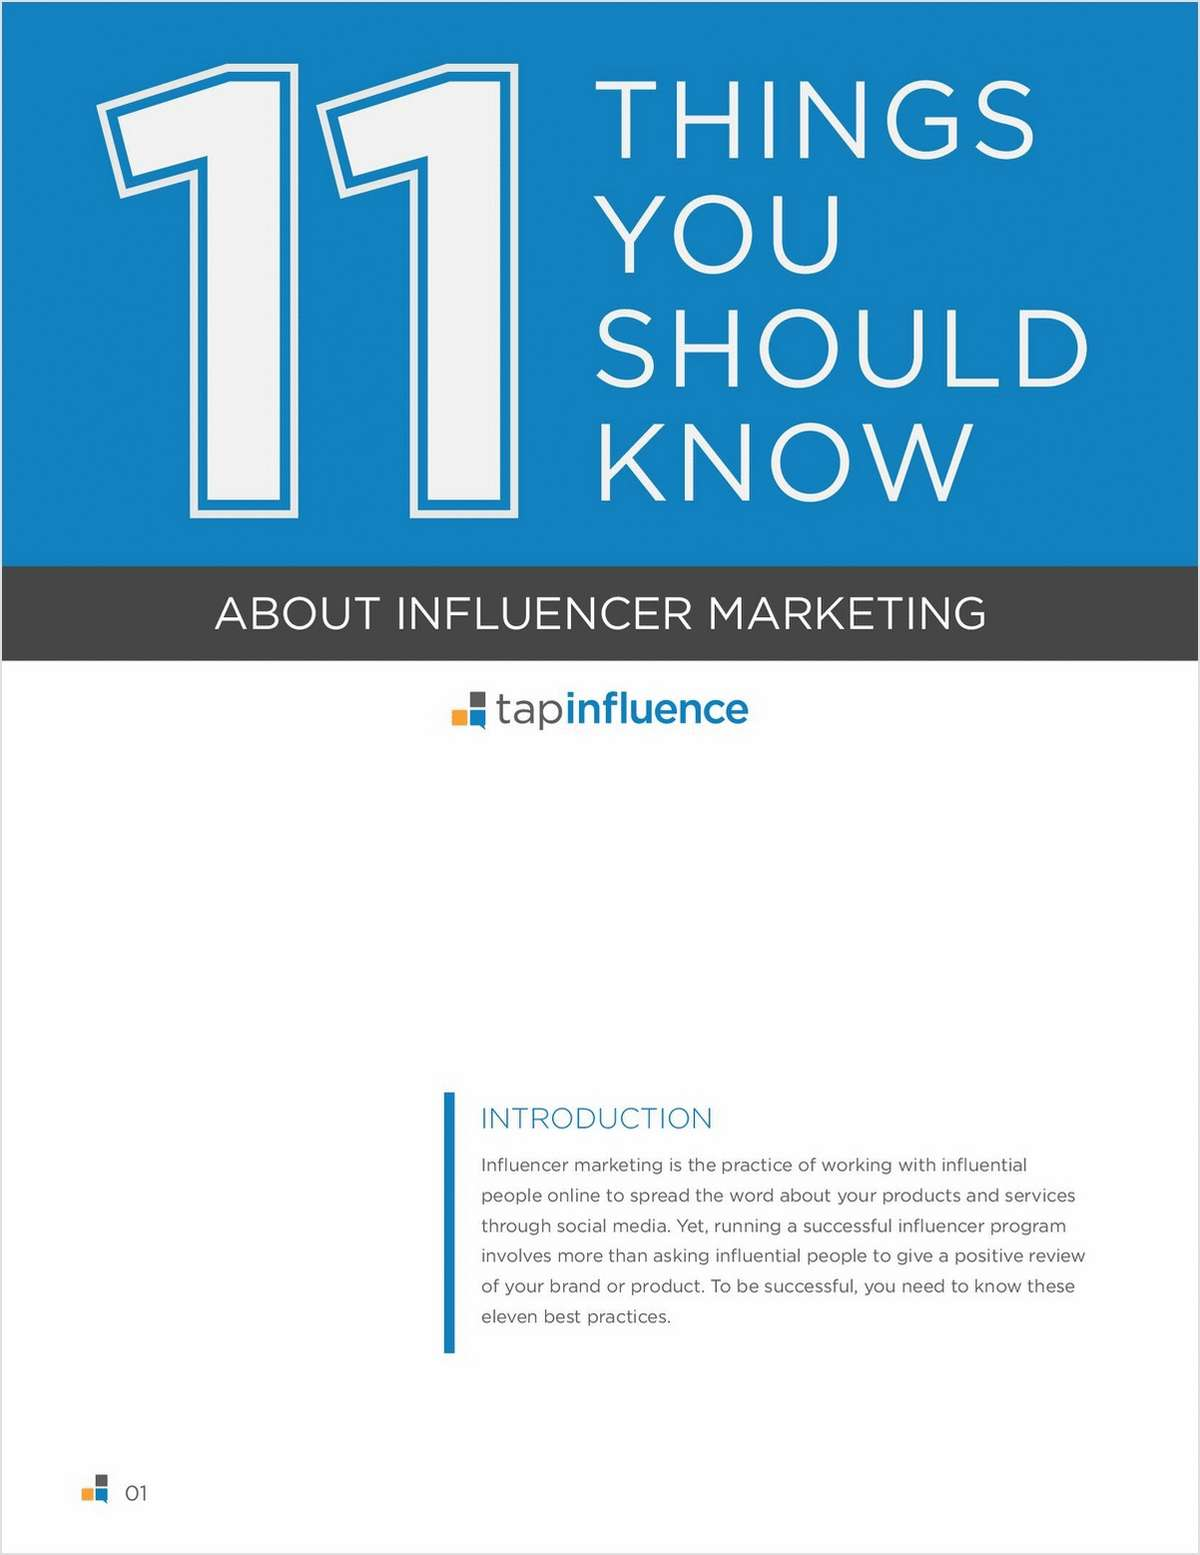 11 Things You Should Know About Influencer Marketing